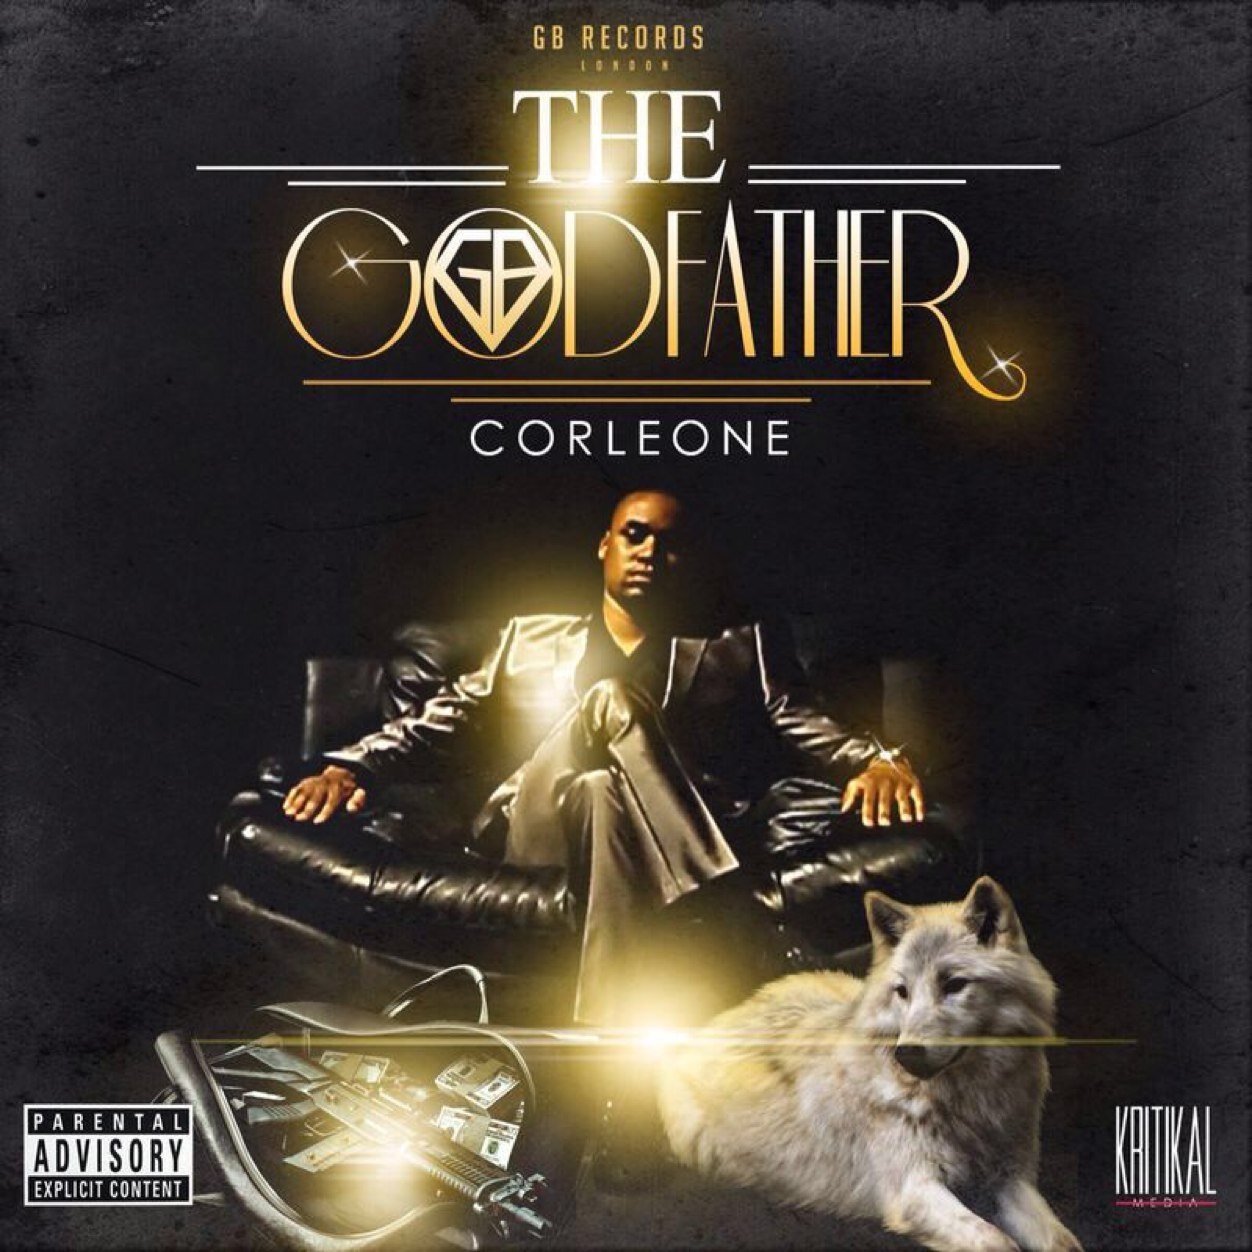 BRITHOPTV: [New Release]  Corleone (@corleonegb) - 'The Godfather' Album OUT NOW! [Rel. 26/08/14] | #UKRap #UKHipHop